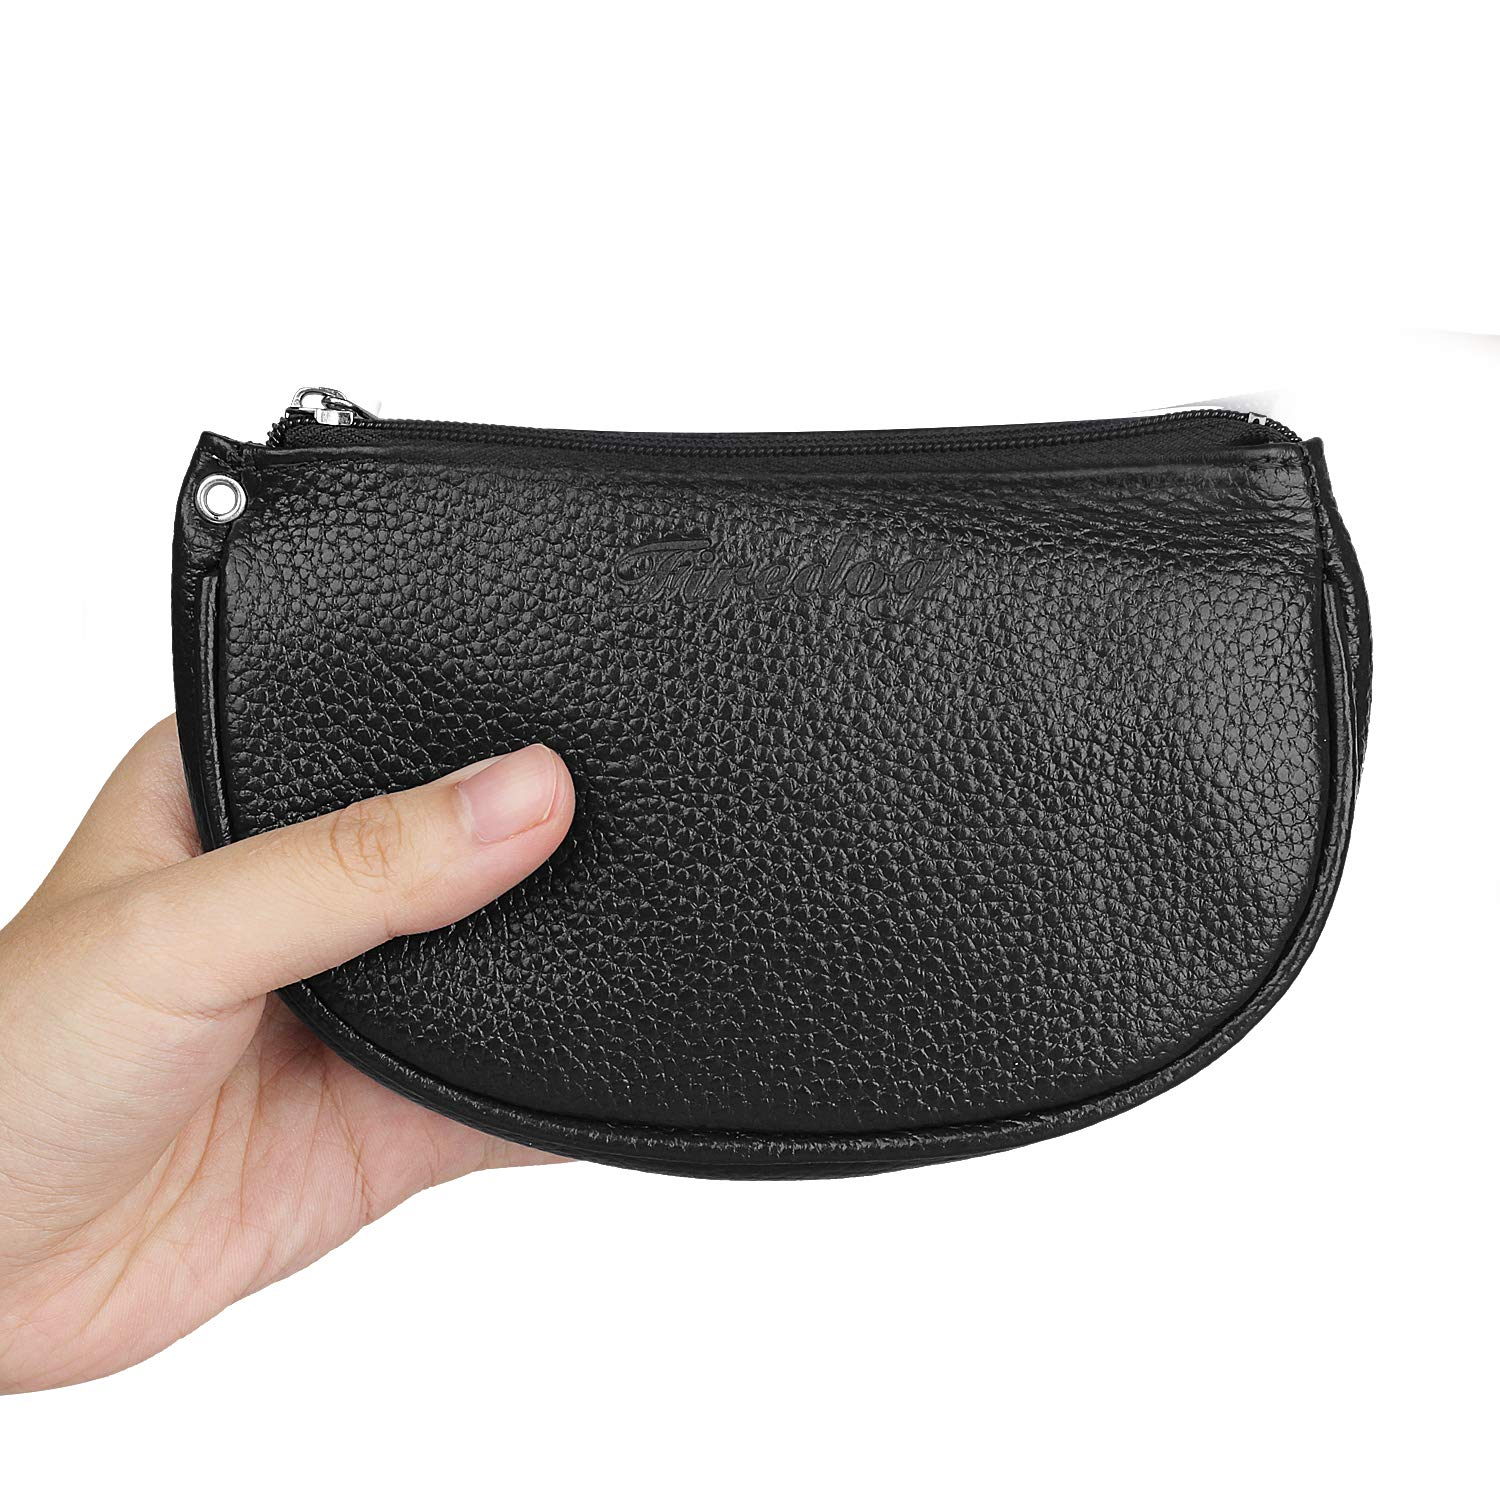 """Firedog 2nd Generation Tobacco Pouch for Smoking Pipe Rolling Cigarette Leather Case Bag with Rubber Lining to Preserve Freshness(No Gap at end) Middle Size (3.75'' Height X 6.25"""" Width) Black"""